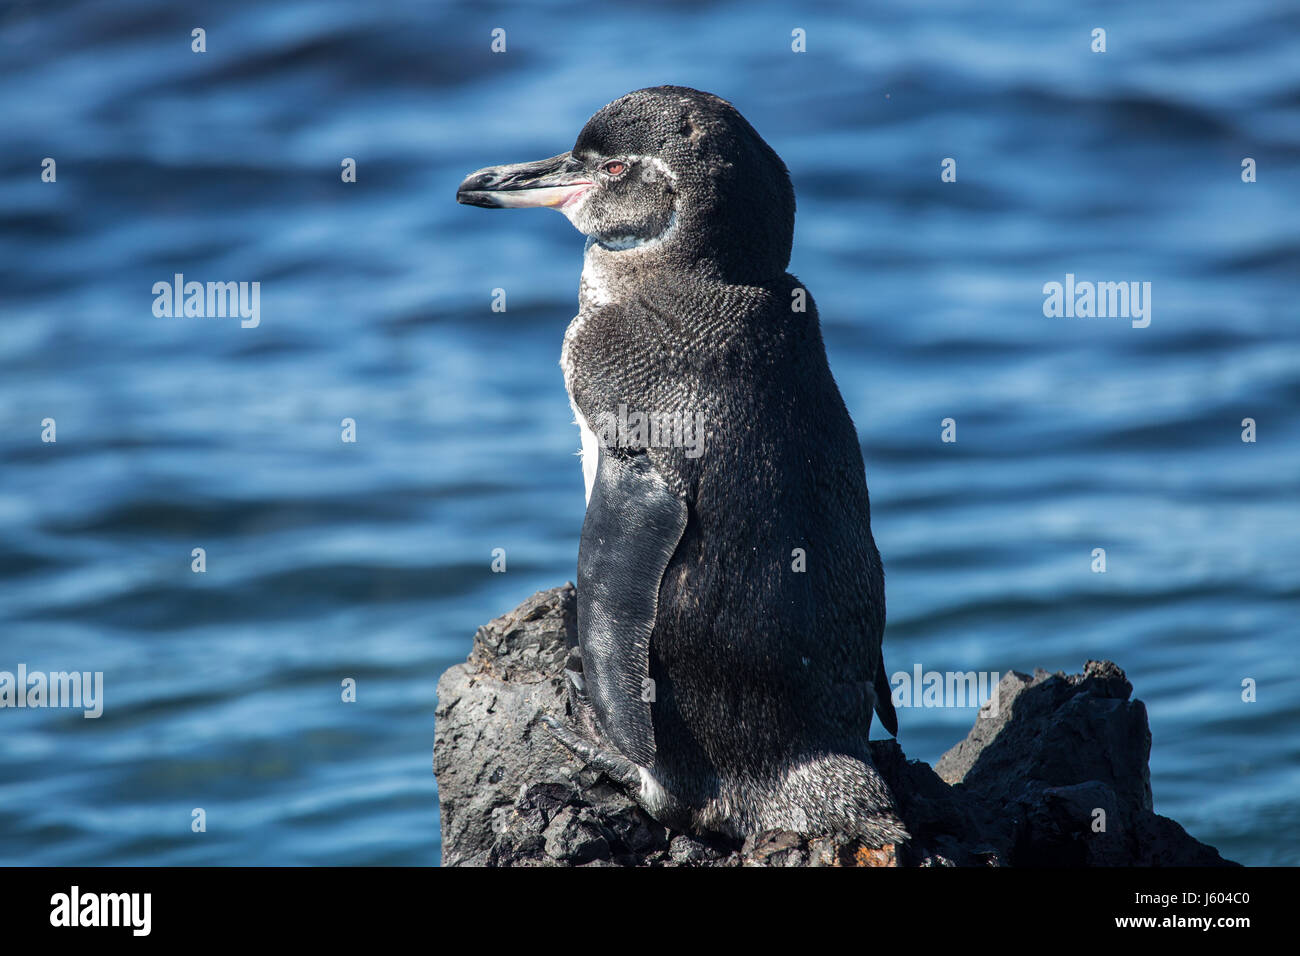 Galapagos penguin standing on a rock - Stock Image